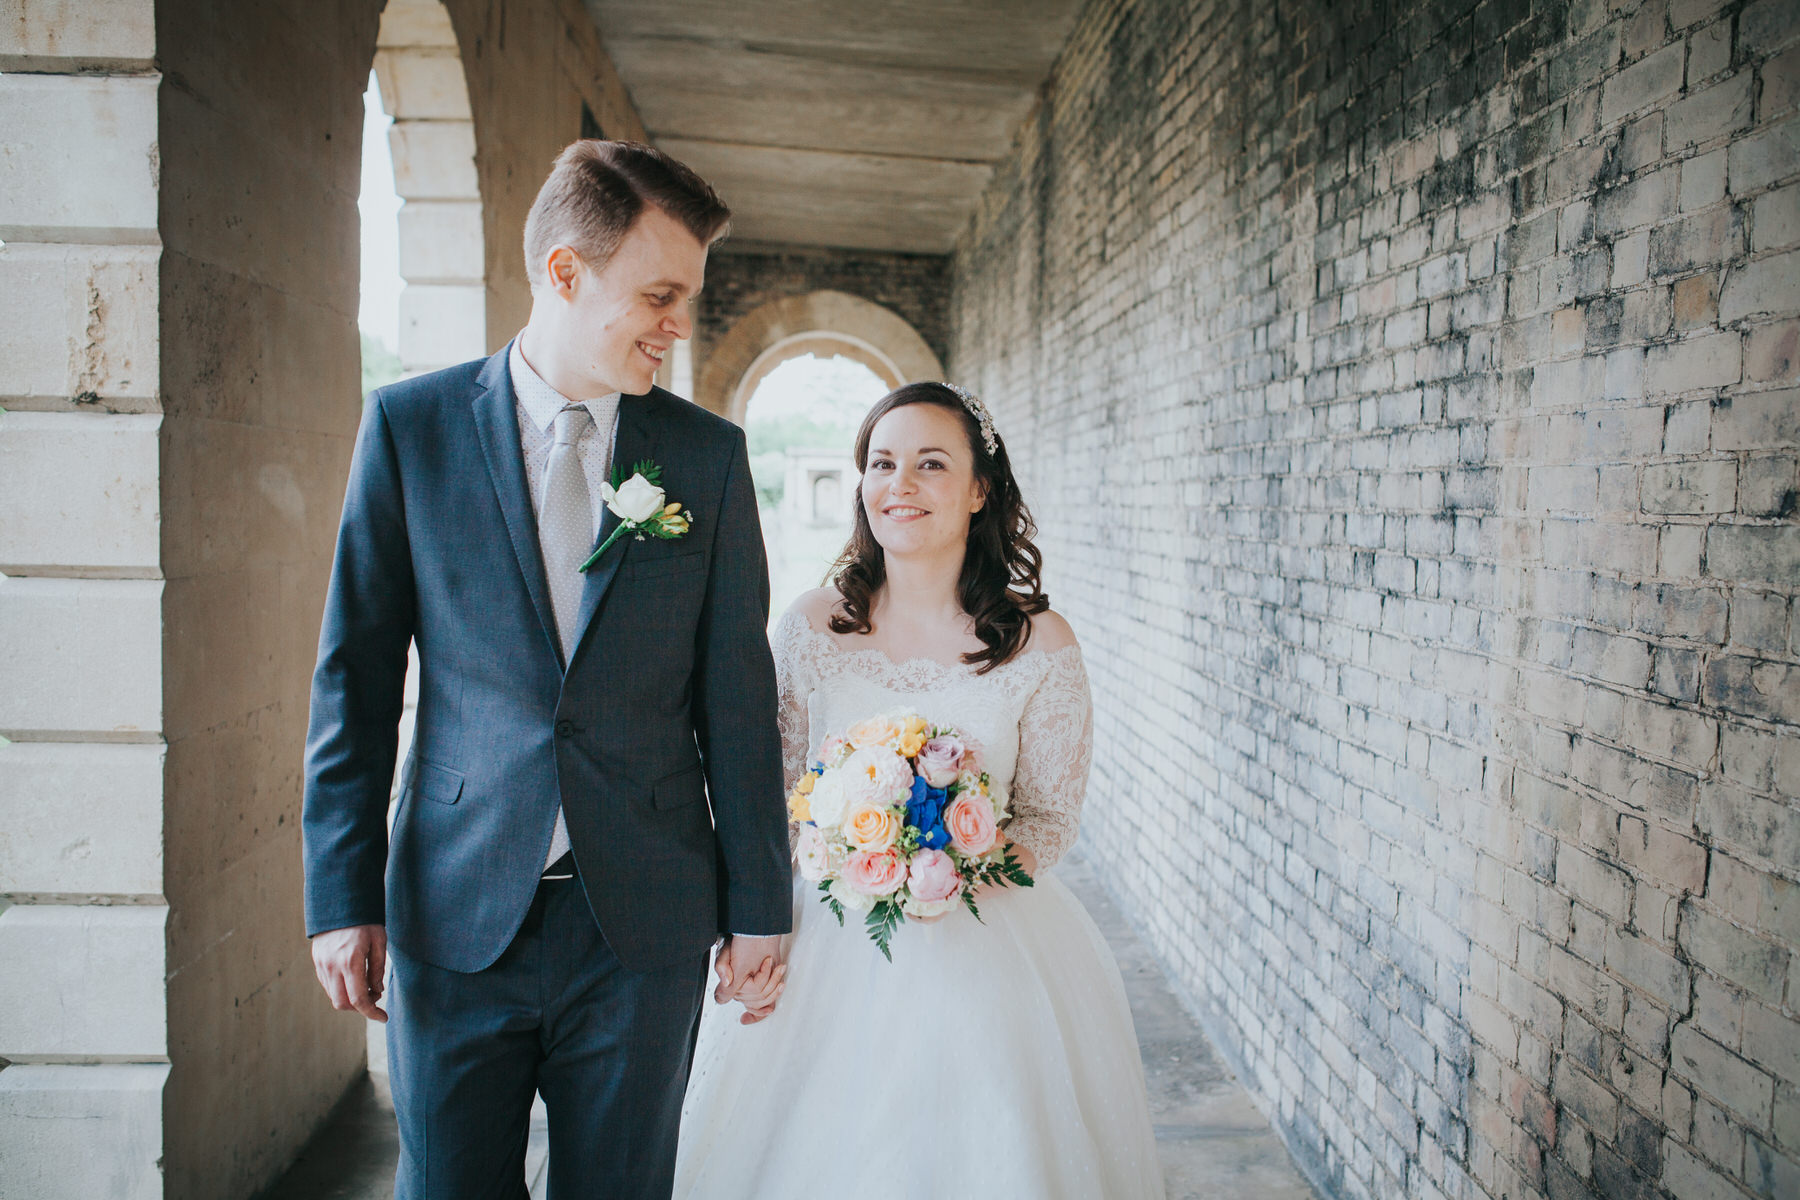 122-groom bride wedding portraits Brompton Cemetery_.jpg